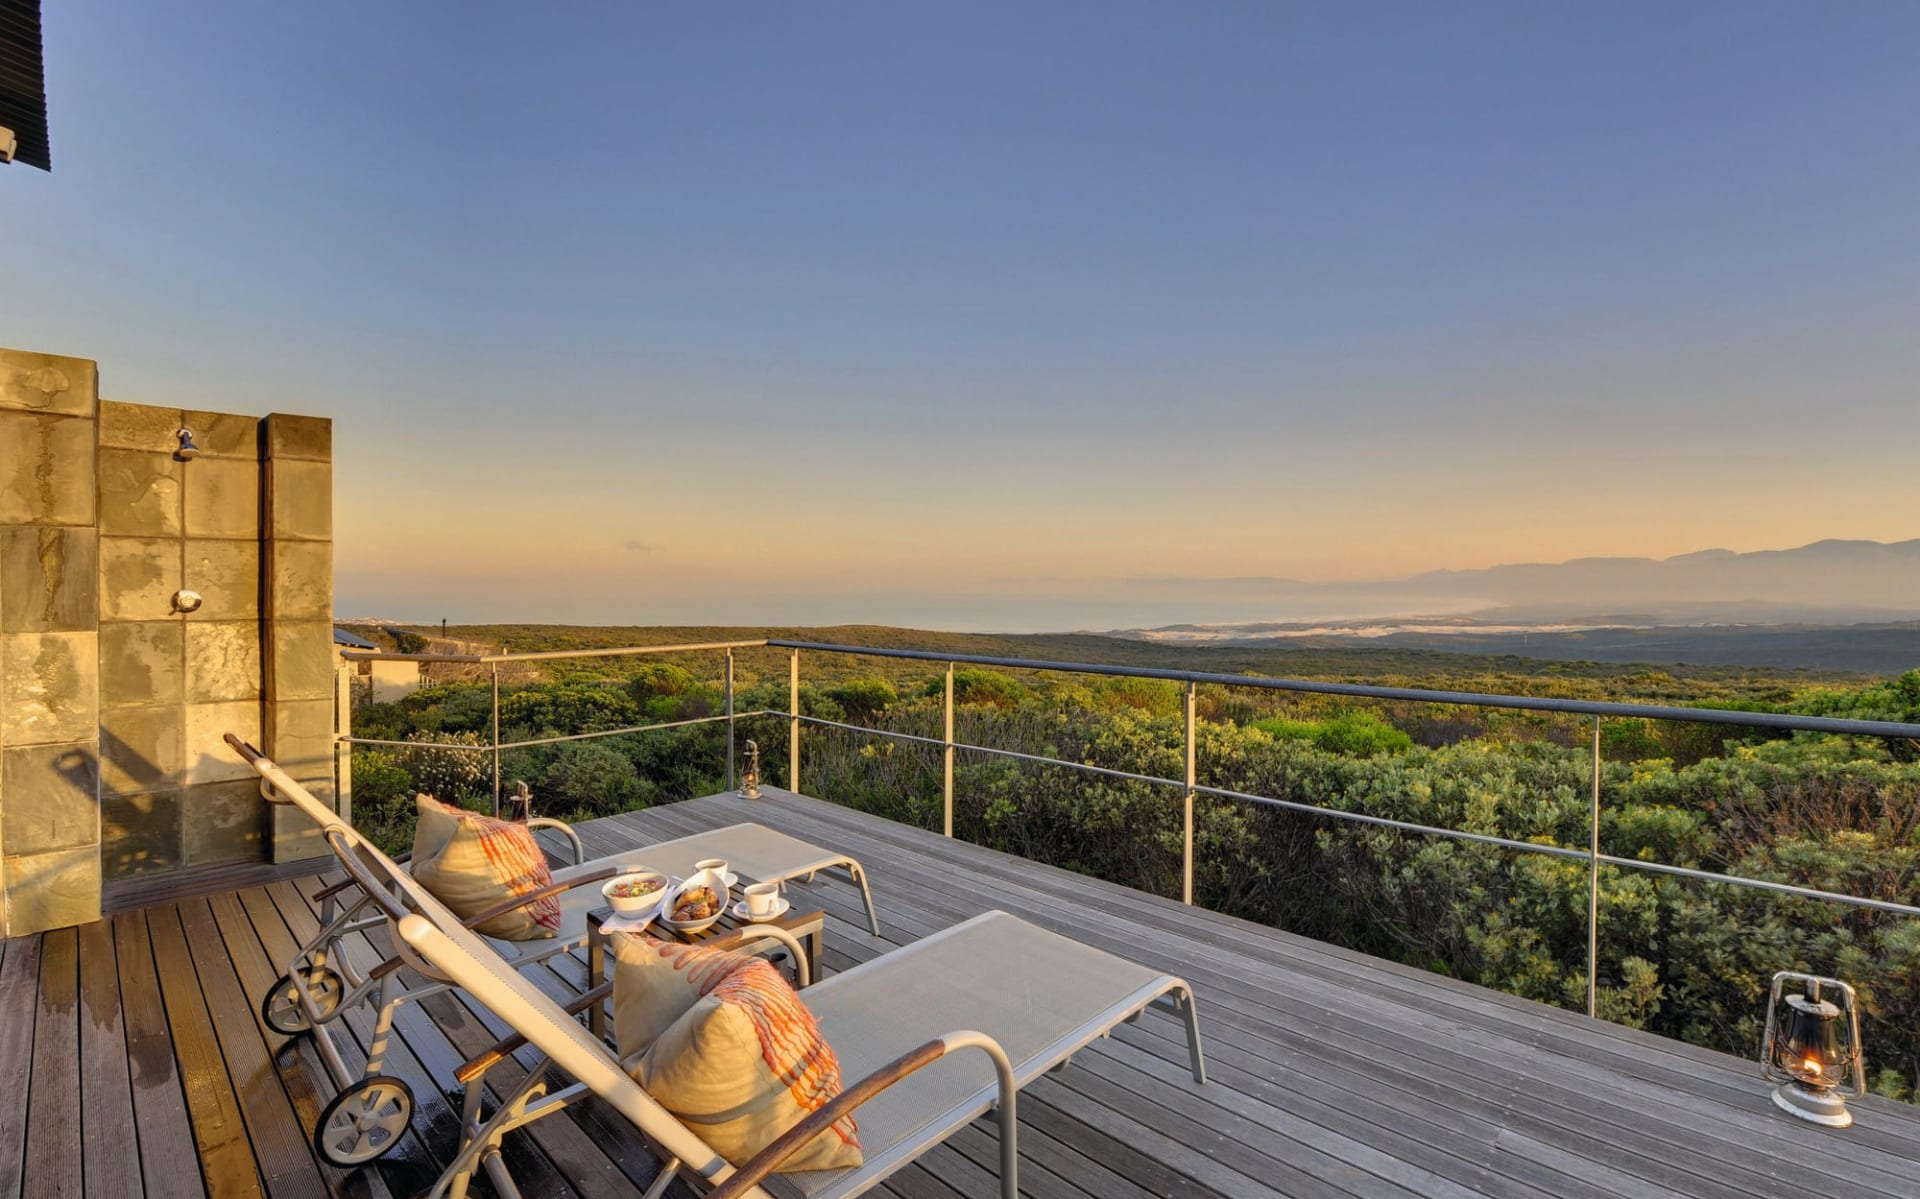 4 C's (Commerce, Conservation, Community & Culture) ab Kapstadt: Exterior Grootbos Private Nature Reserve Terrasse der Forest Lodge mit Liegestühle